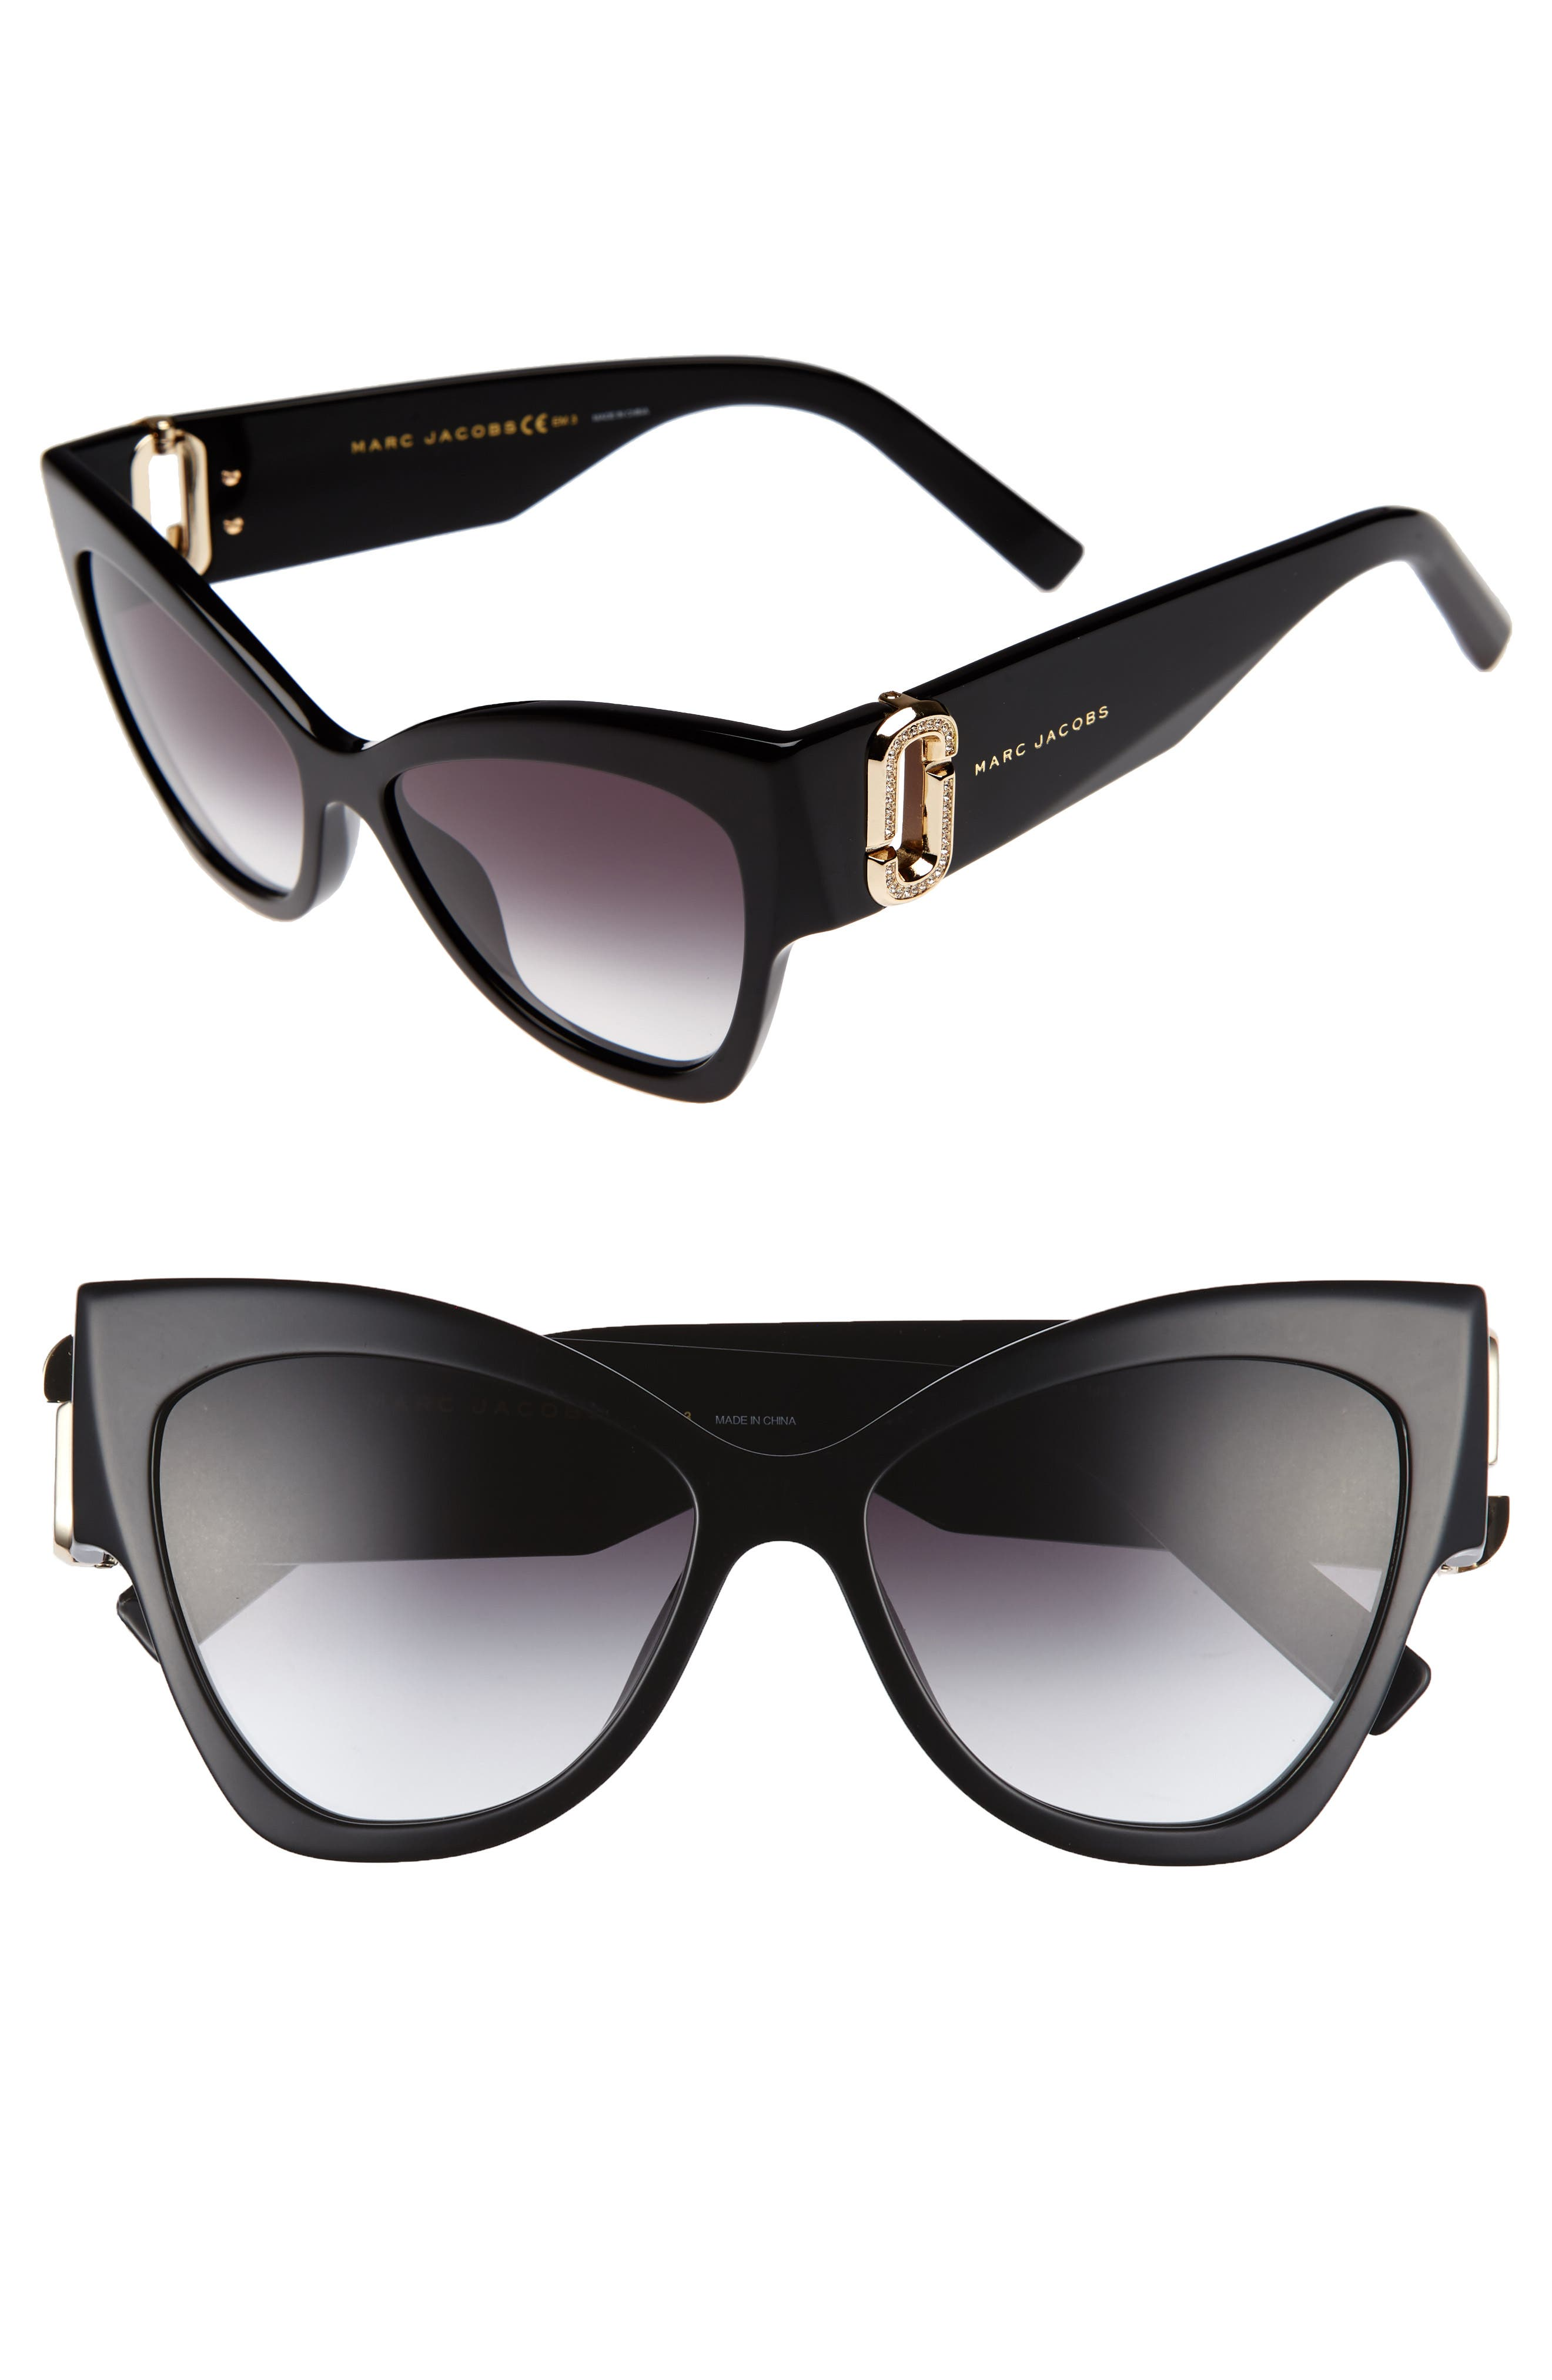 Main Image - MARC JACOBS 54mm Cat Eye Sunglasses